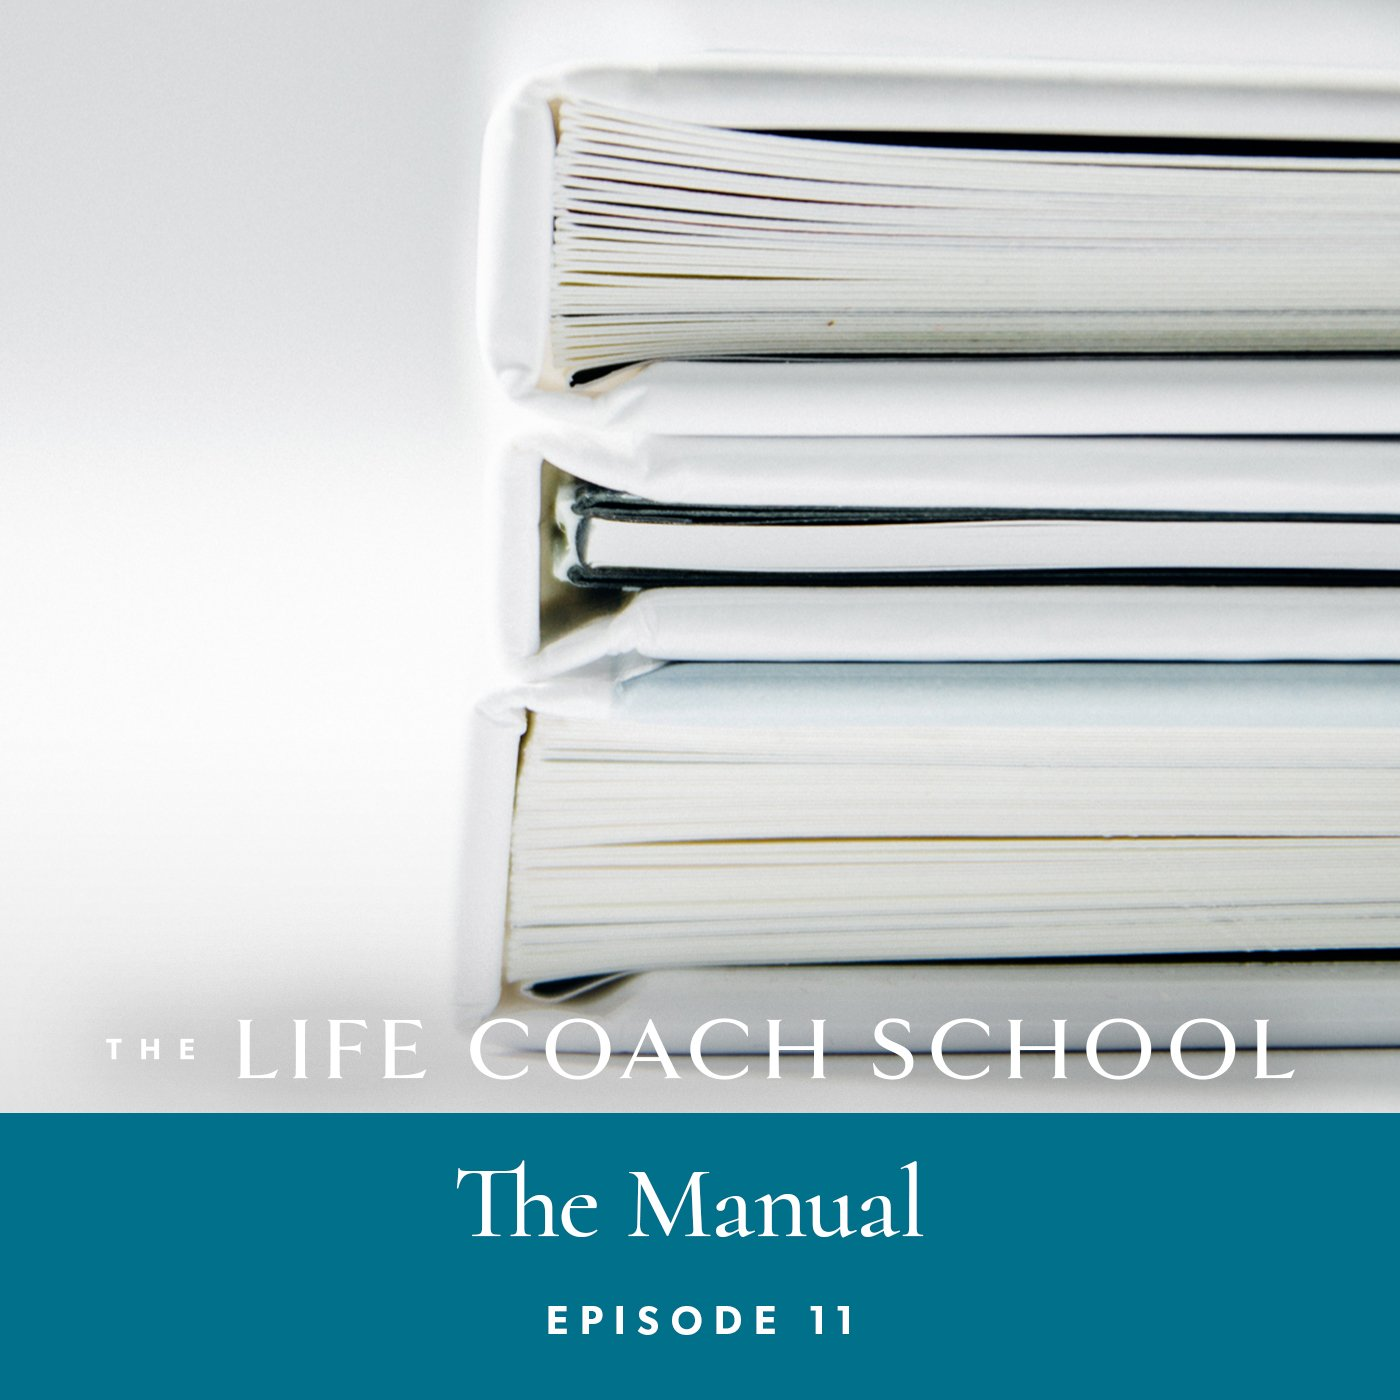 The Life Coach School Podcast with Brooke Castillo | Episode 11 | The Manual